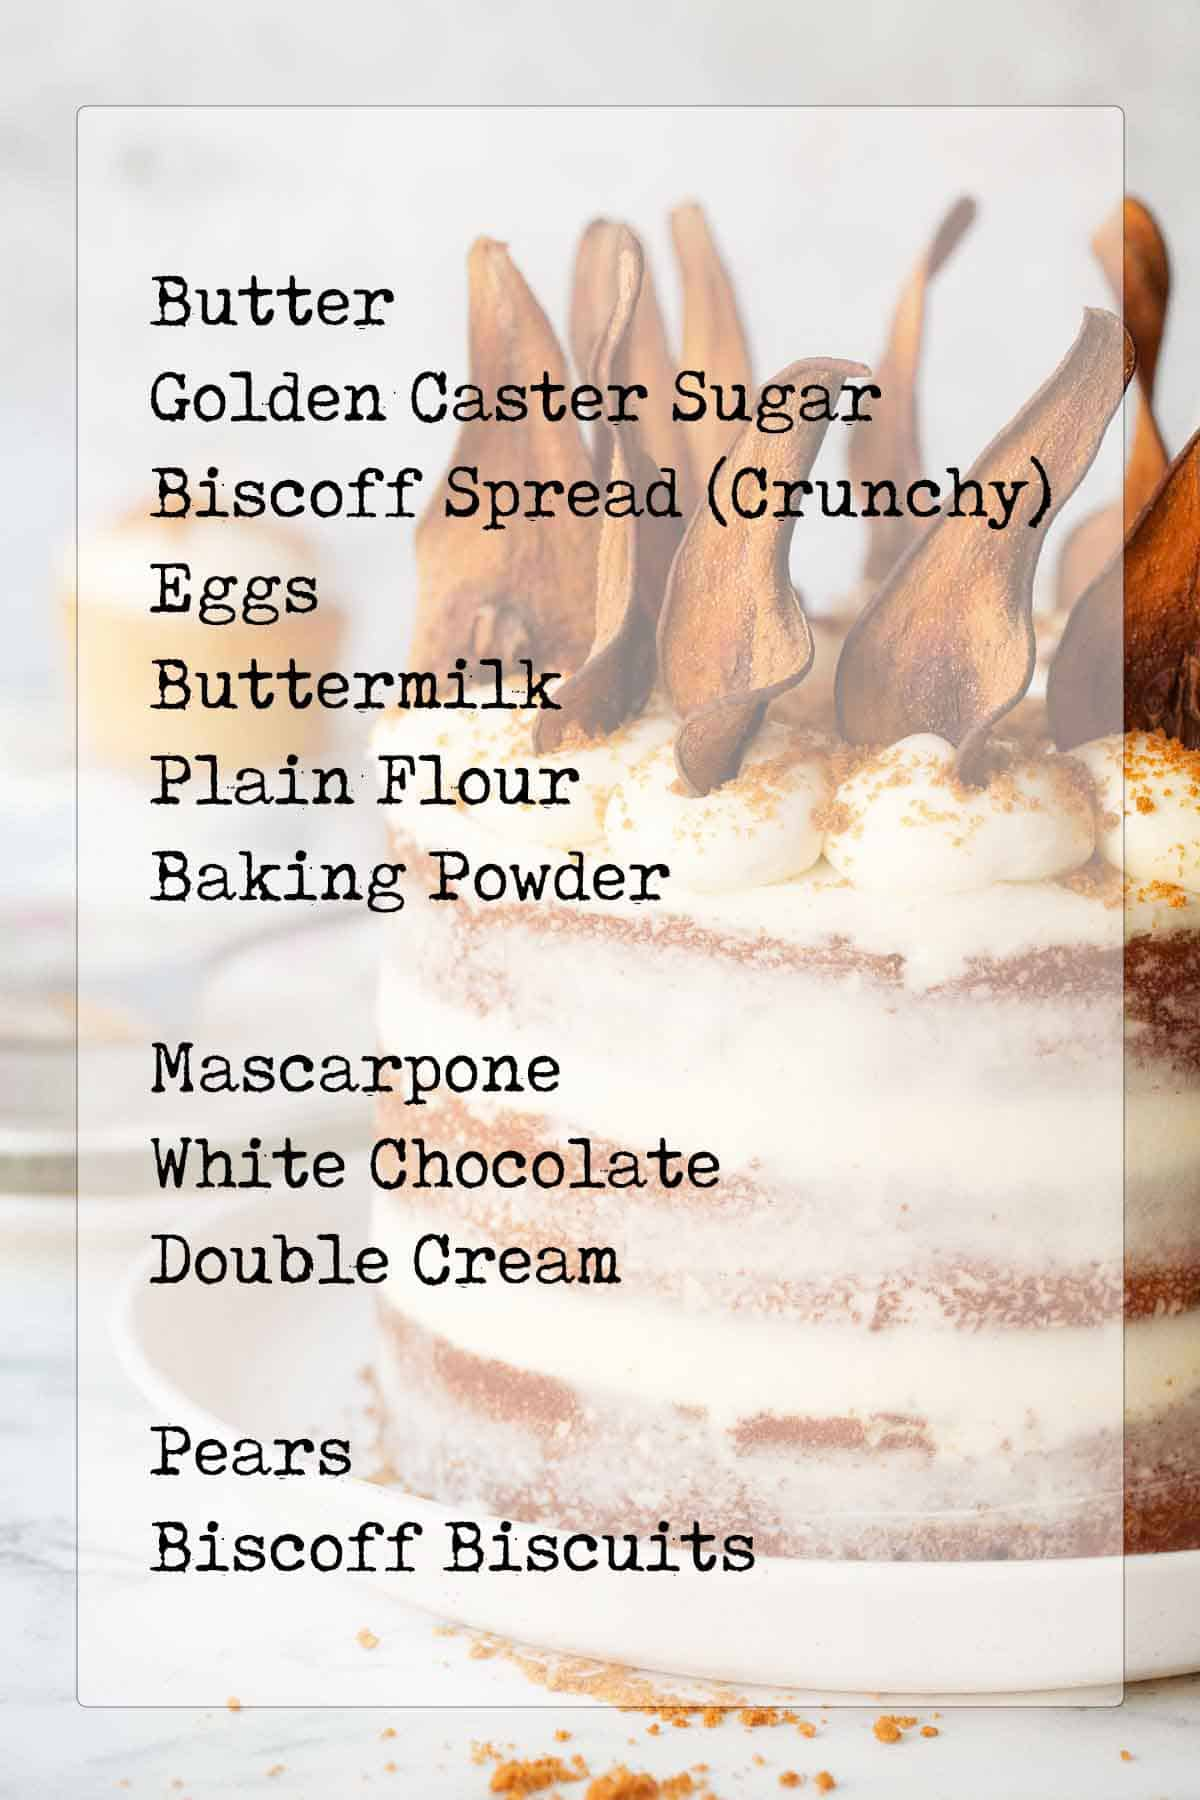 Layer cake with text overlay listing ingredients